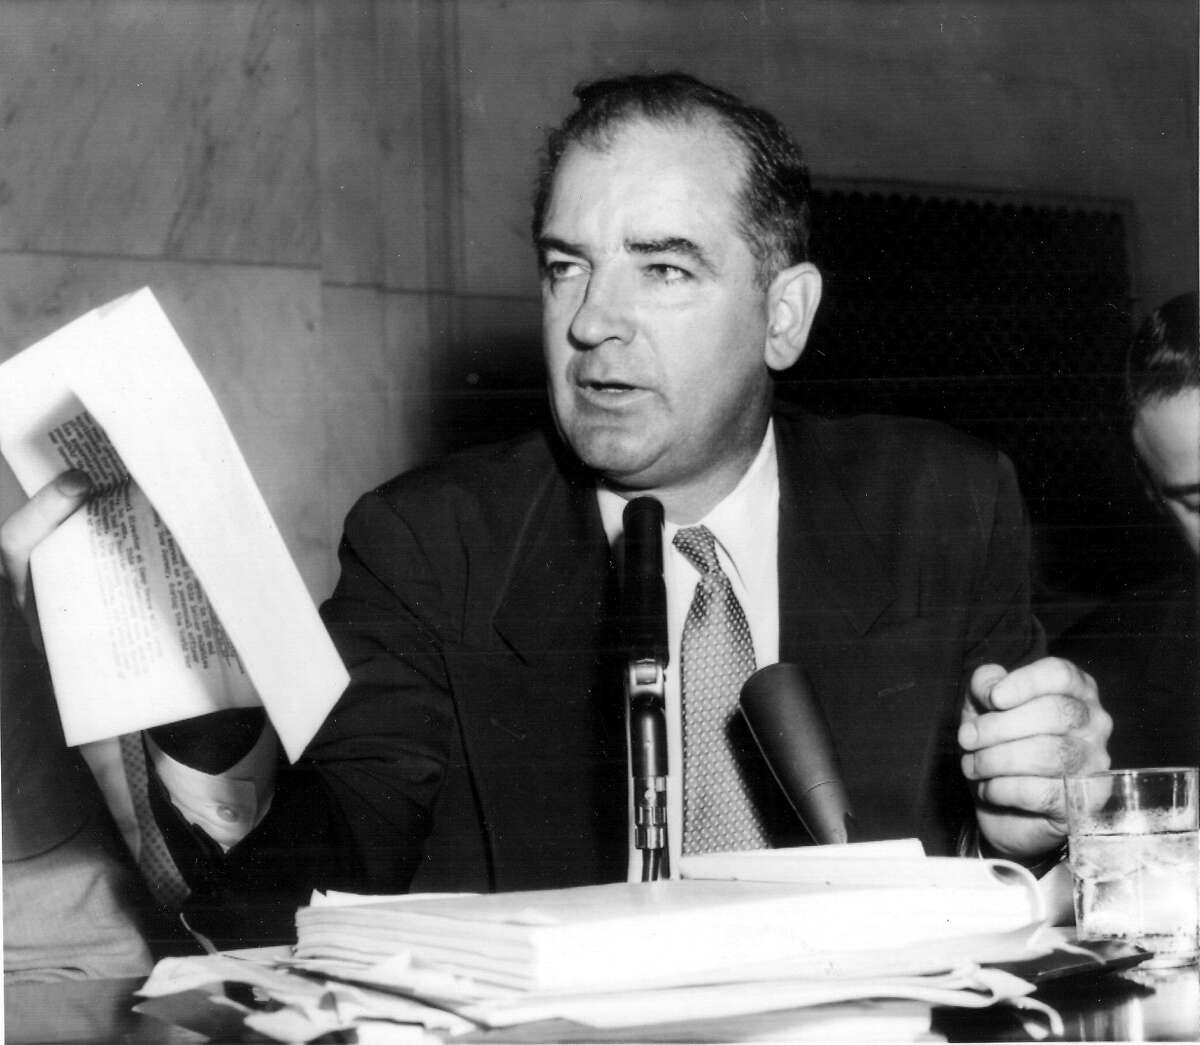 Sen. Joseph McCarthy (R-Wis) holds a copy of a letter under discussion at May 5, 1954 McCarthy-Army hearing session. [The televised hearings began April 22, 1954.] A committee attorney quoted FBI Director J. Edgar Hoover as saying the letter produced by McCarthy yesterday was not a true copy of one written by Hoover to the Army. McCarthy stressed that the letter he produced was verbatim with the FBI report, except for deletion of security information. (PHOTO DATED 05 05 1954) CREDIT: ASSOCIATED PRESS